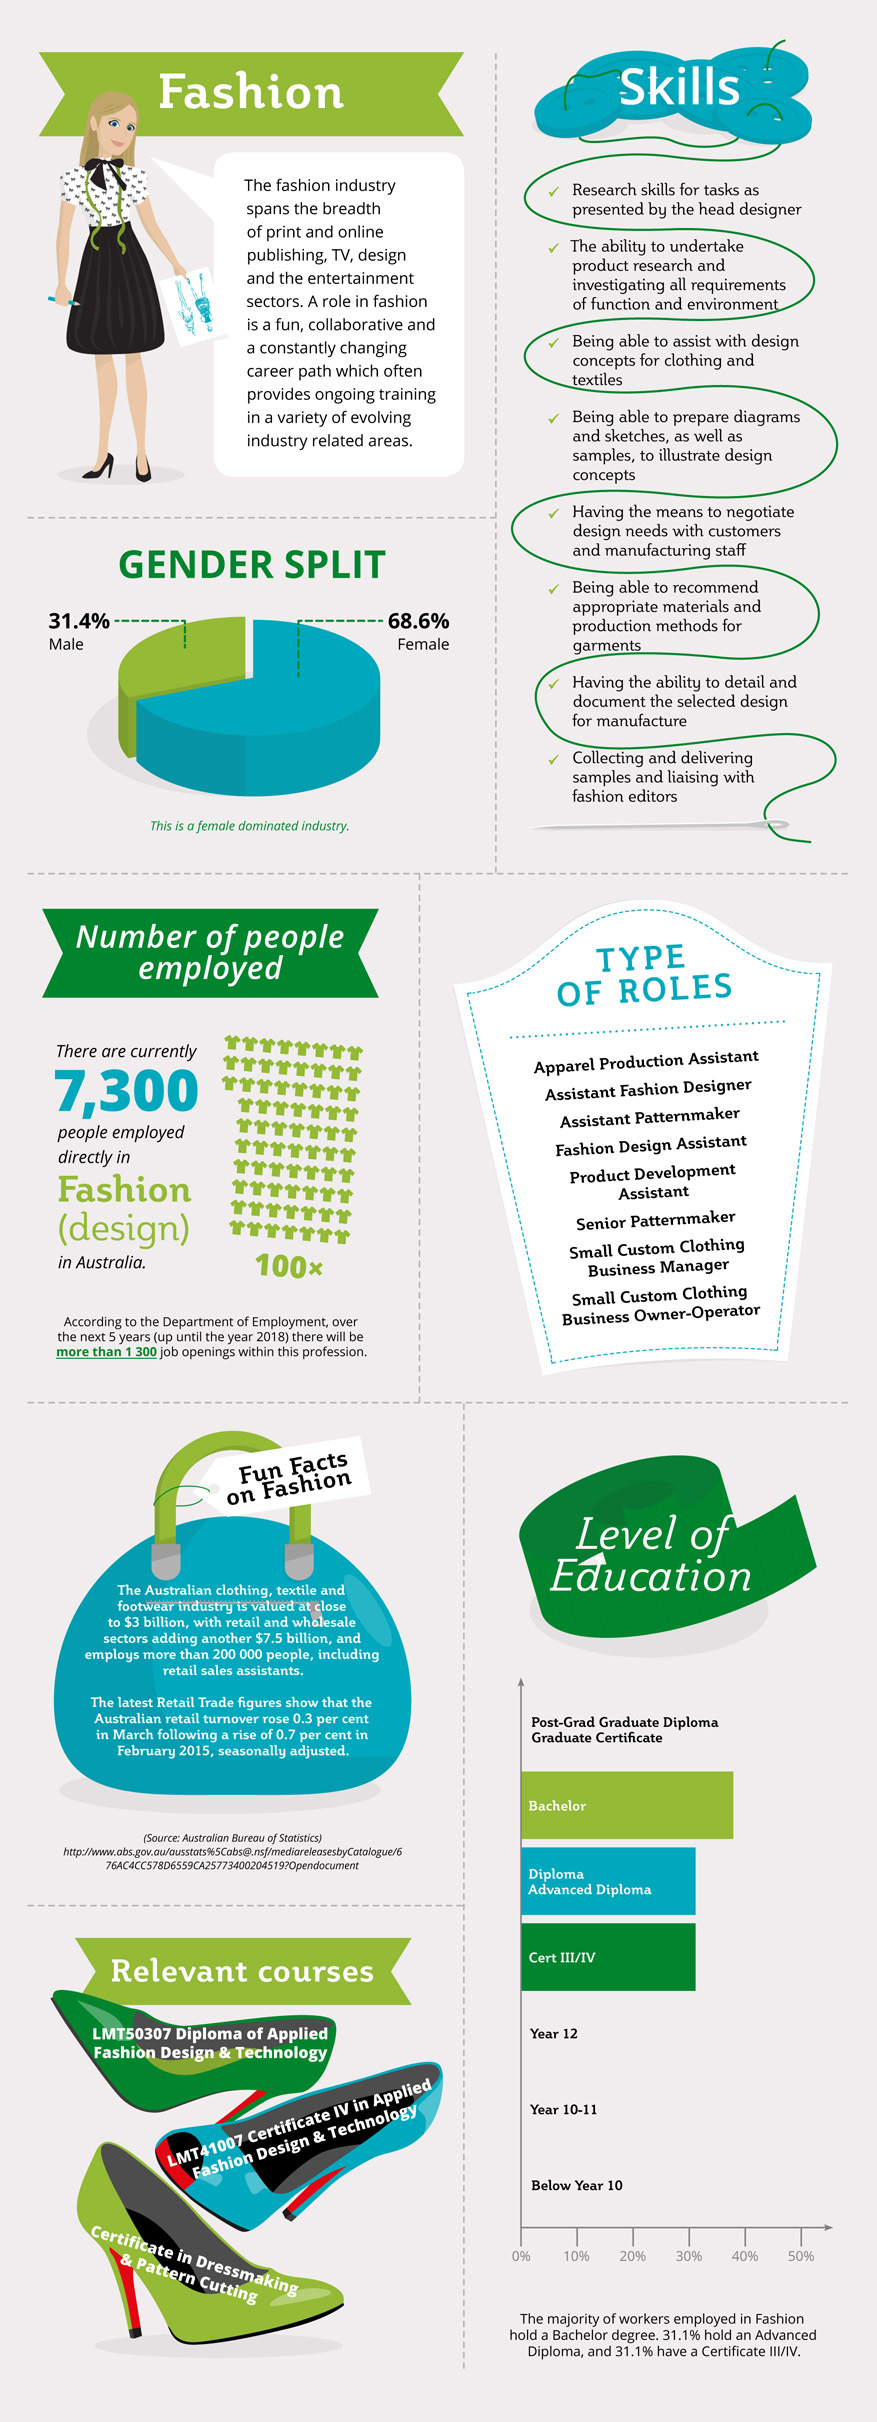 Your-Career-in-the-Fashion-Industry-infographic